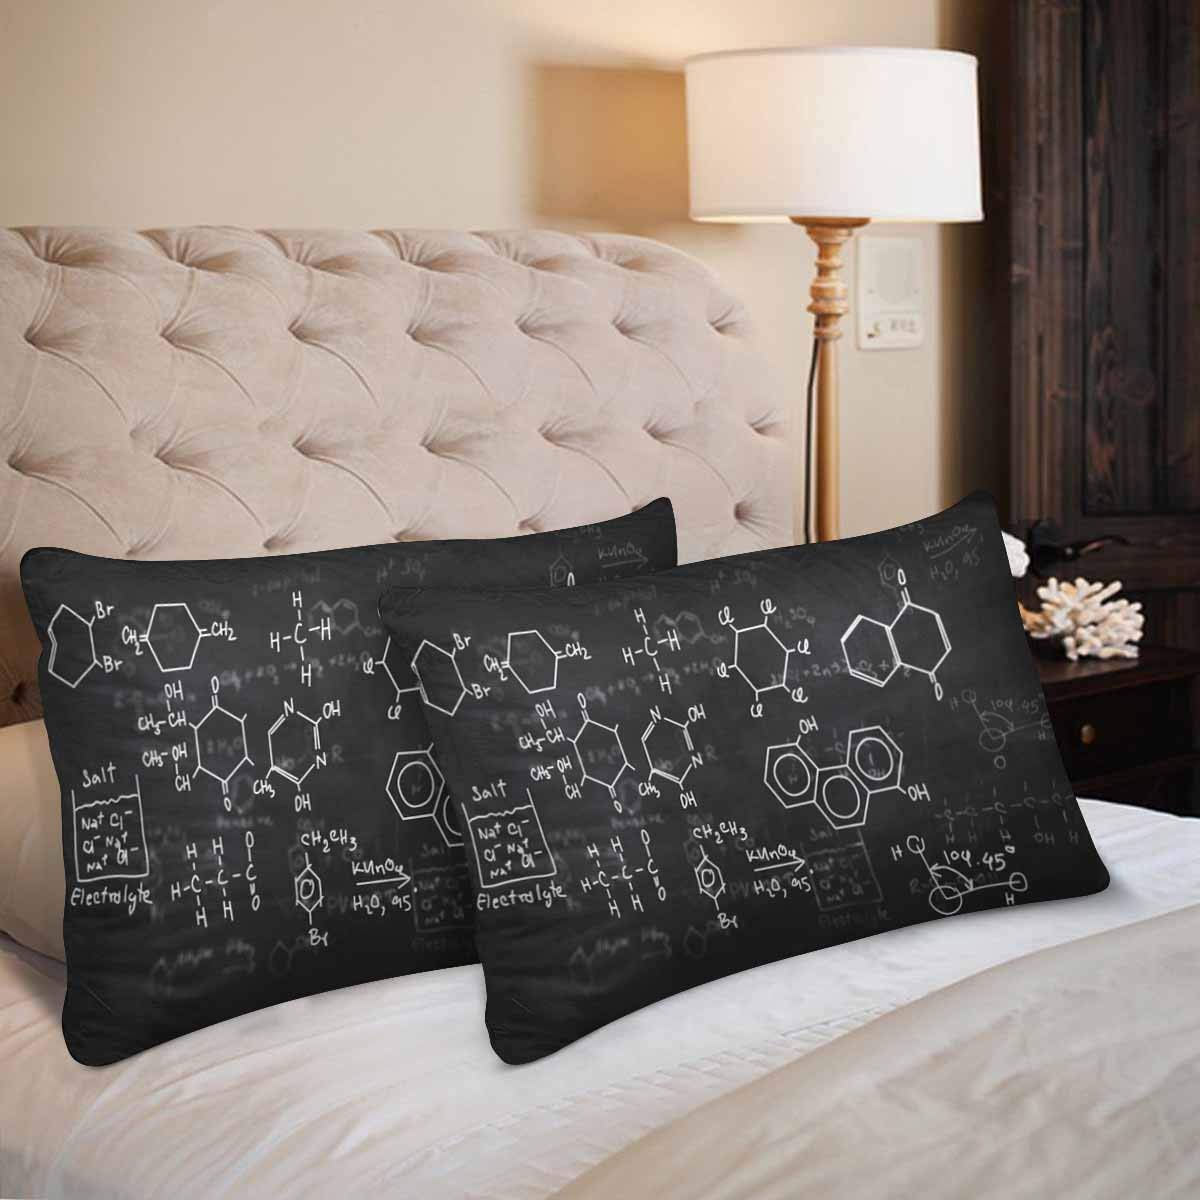 GCKG Chemical Formulas Chalkboard Pillow Cases Pillowcase 20x30 inches Set of 2 - image 3 of 4